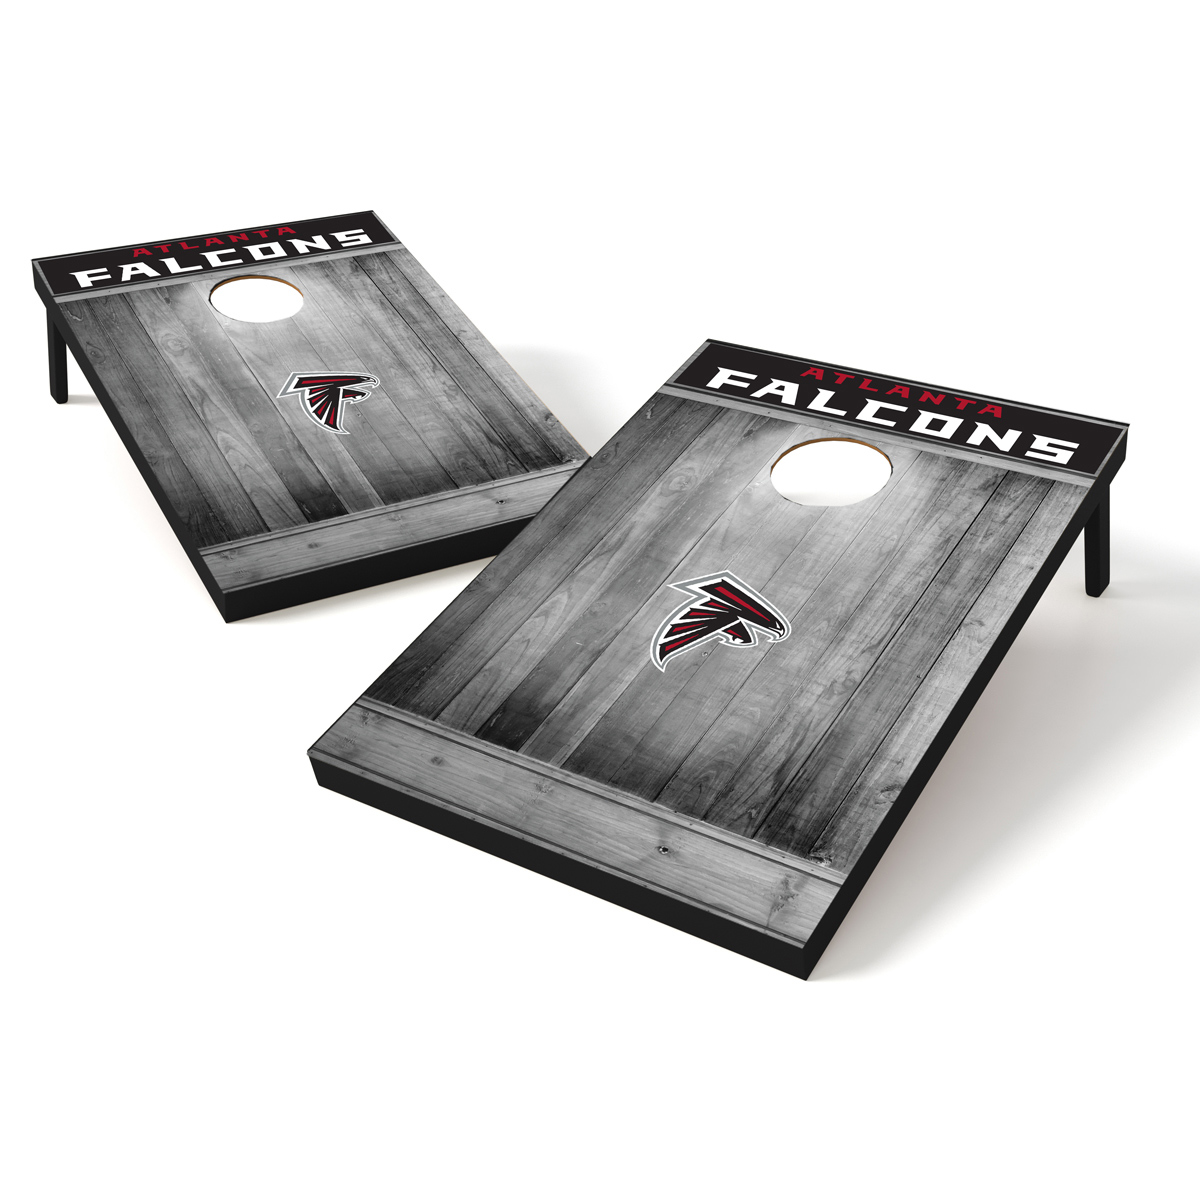 Tailgate Toss Wood NFL Atlanta Falcons